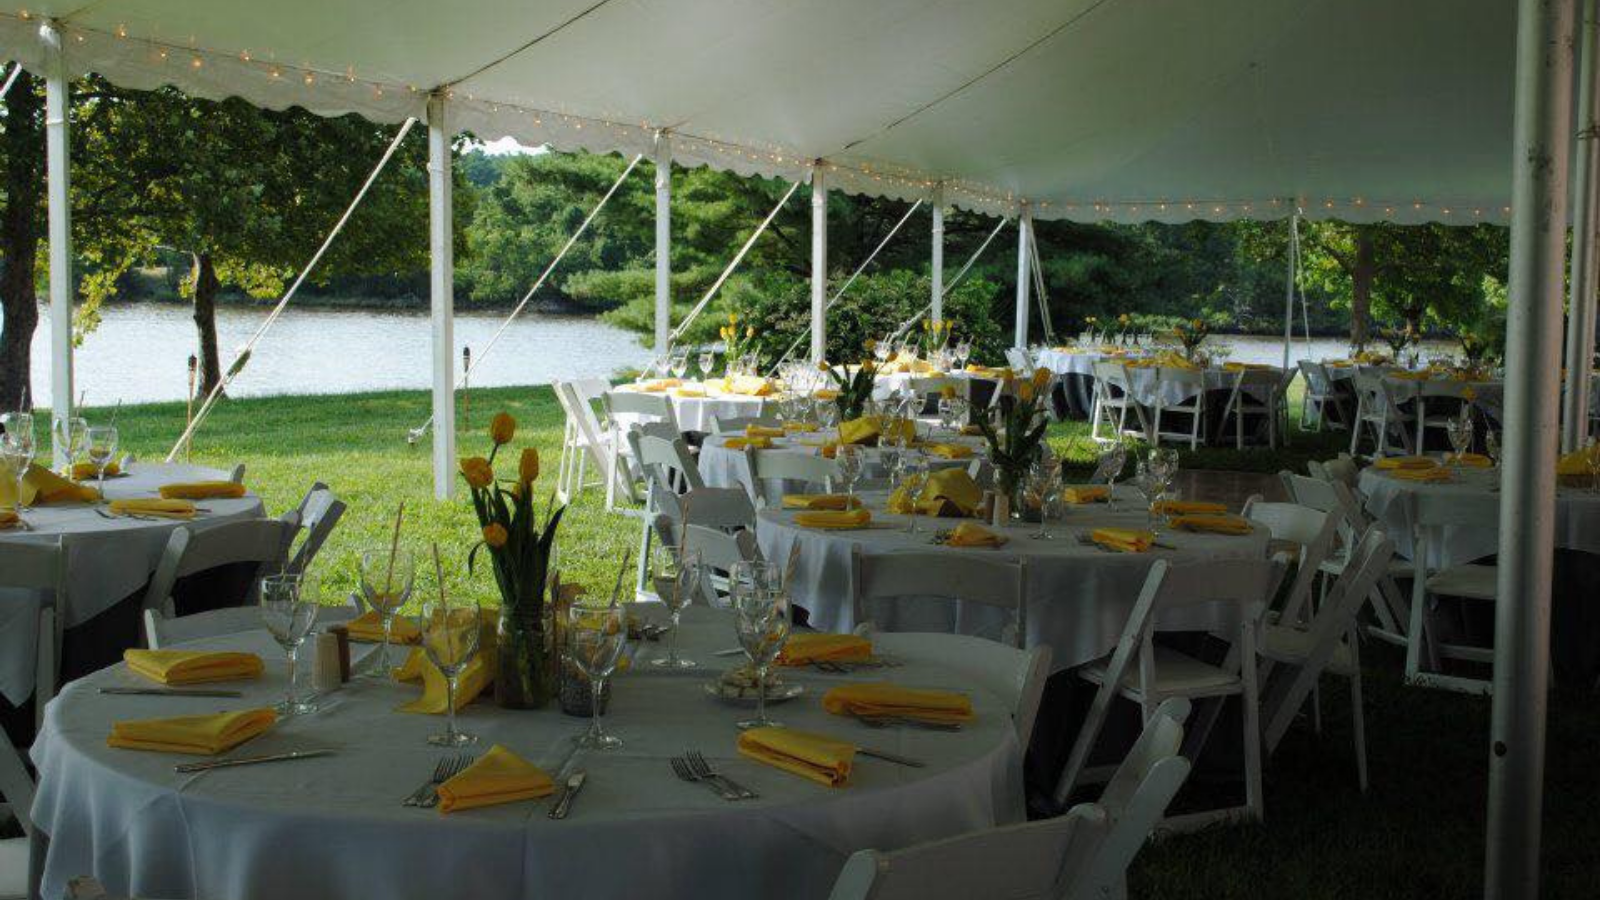 One of many outdoor wedding venues catered by the Smokehouse Grill with yellow accents